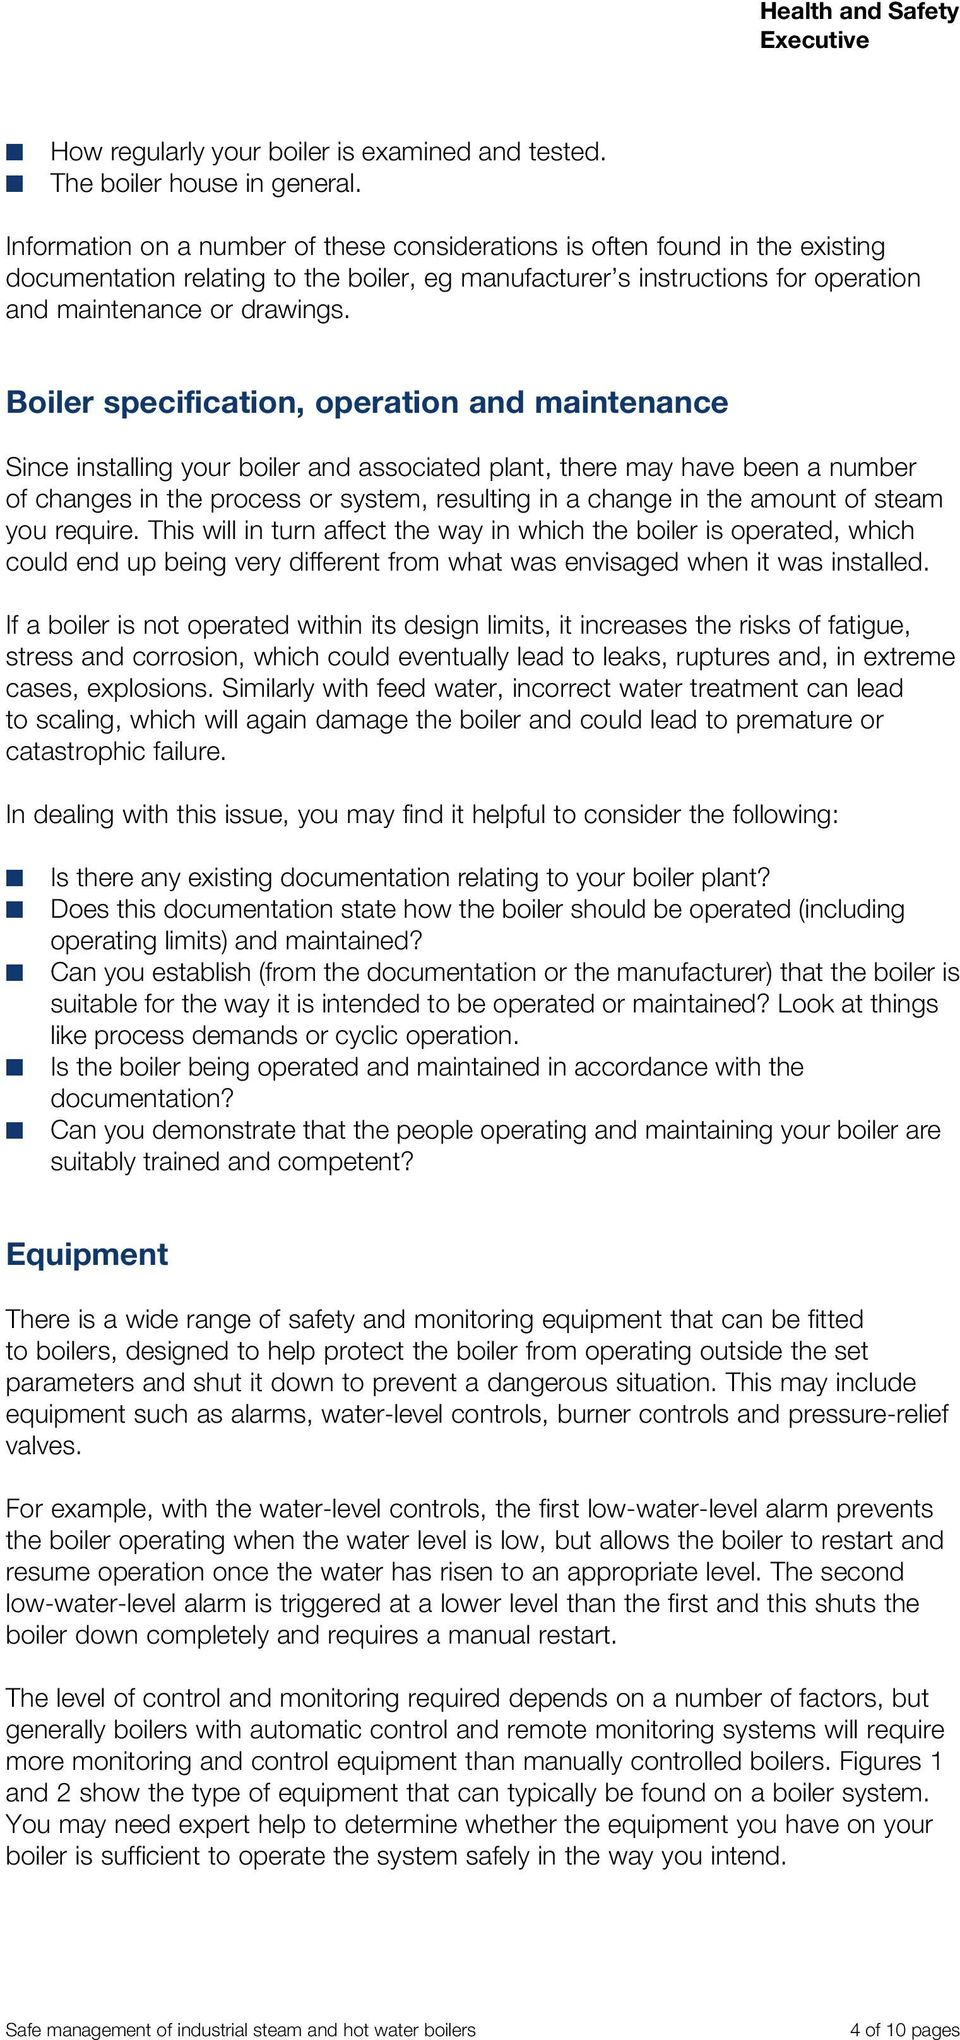 Boiler specification, operation and maintenance Since installing your boiler and associated plant, there may have been a number of changes in the process or system, resulting in a change in the